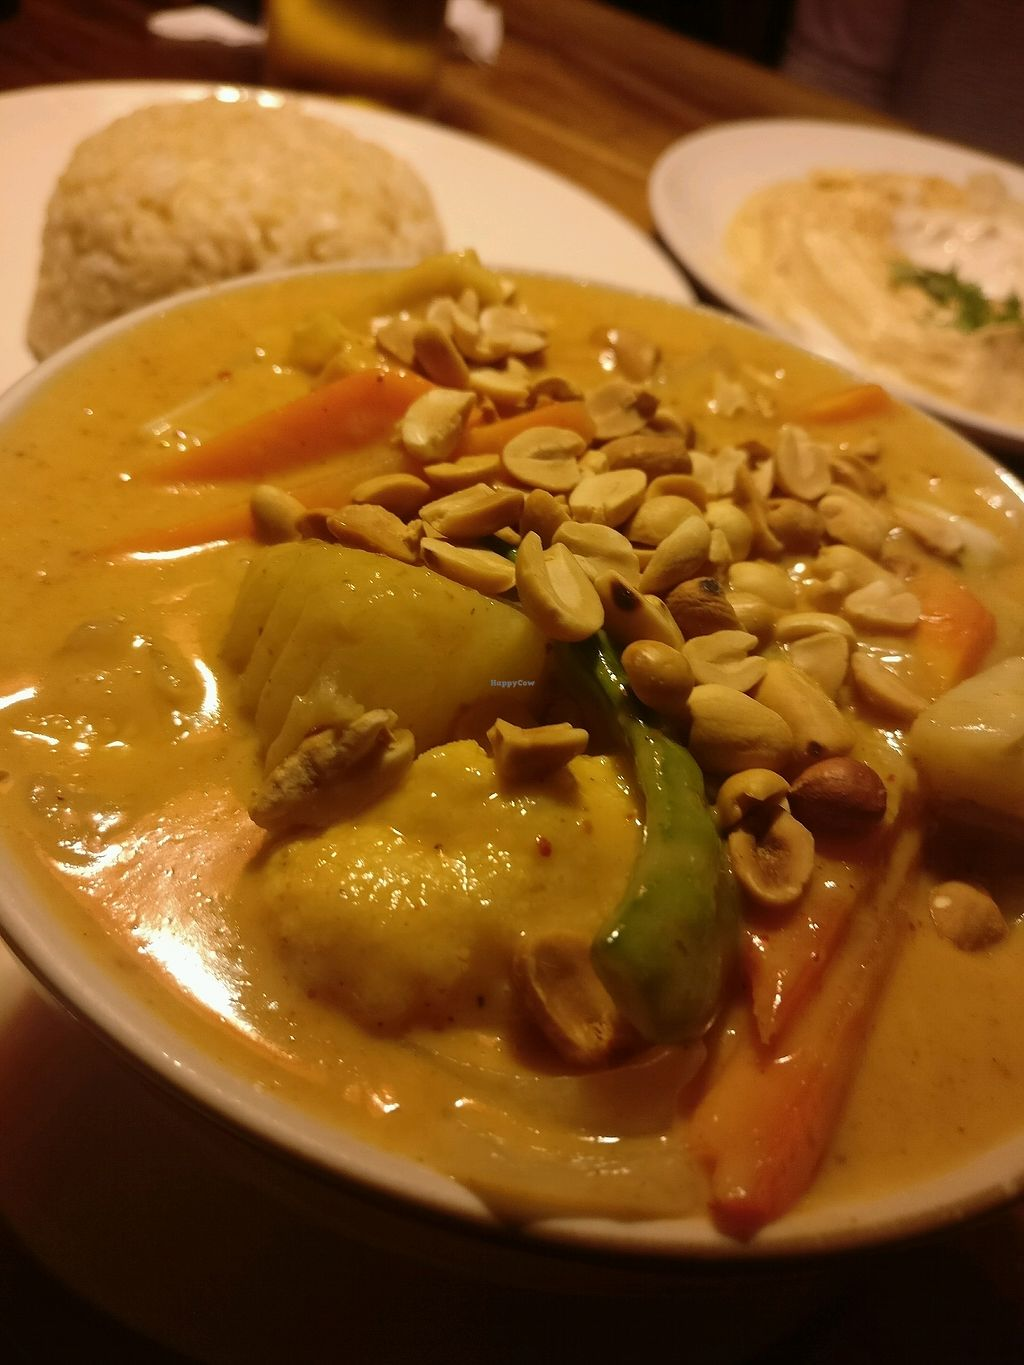 """Photo of Ethos  by <a href=""""/members/profile/cdnvegan"""">cdnvegan</a> <br/>mussaman curry and brown rice  <br/> February 12, 2018  - <a href='/contact/abuse/image/10554/358309'>Report</a>"""